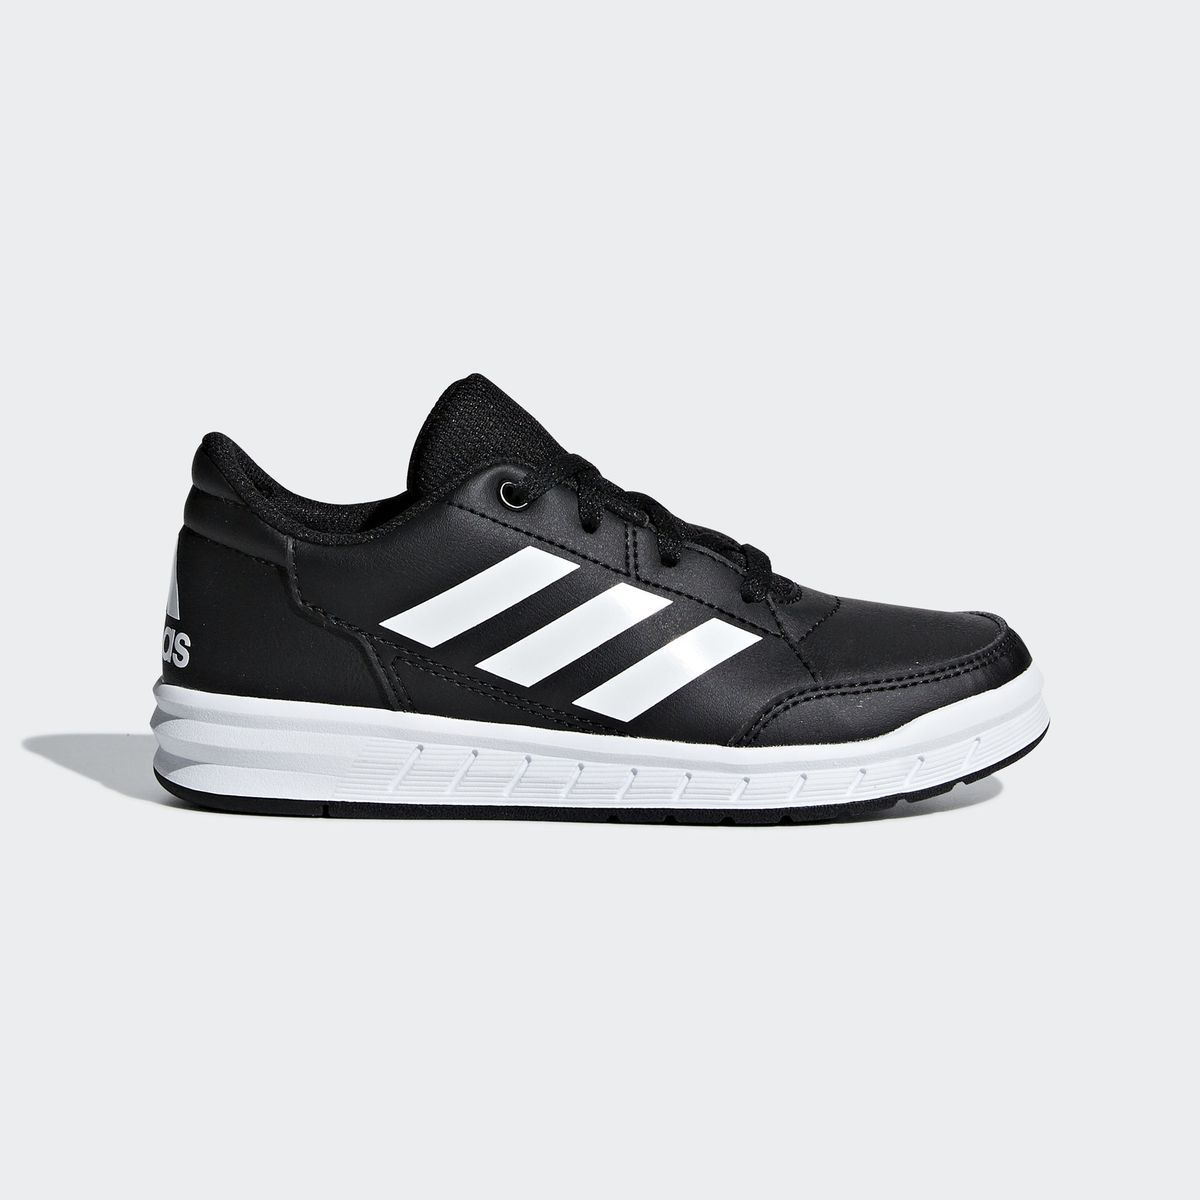 chaussure fille 34 adidas